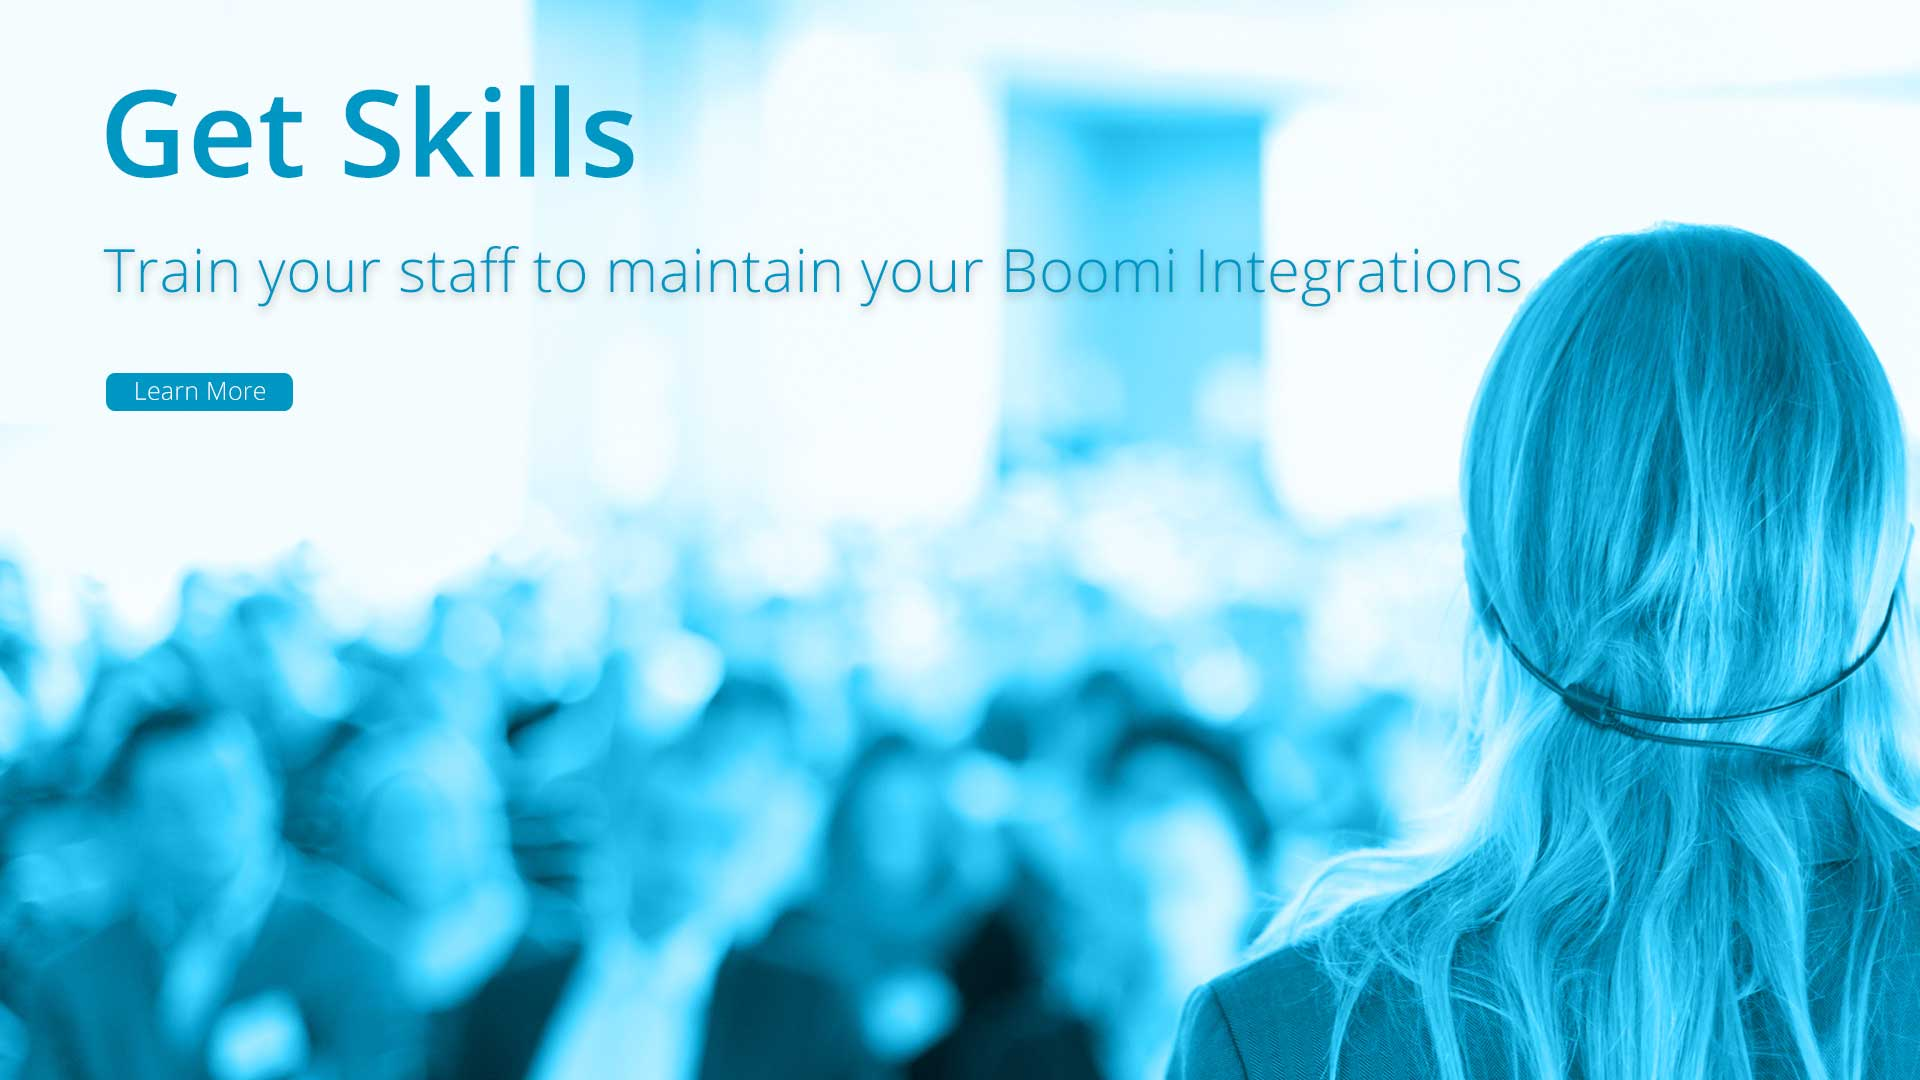 Train Your Staff to Maintain Your Boomi Integrations